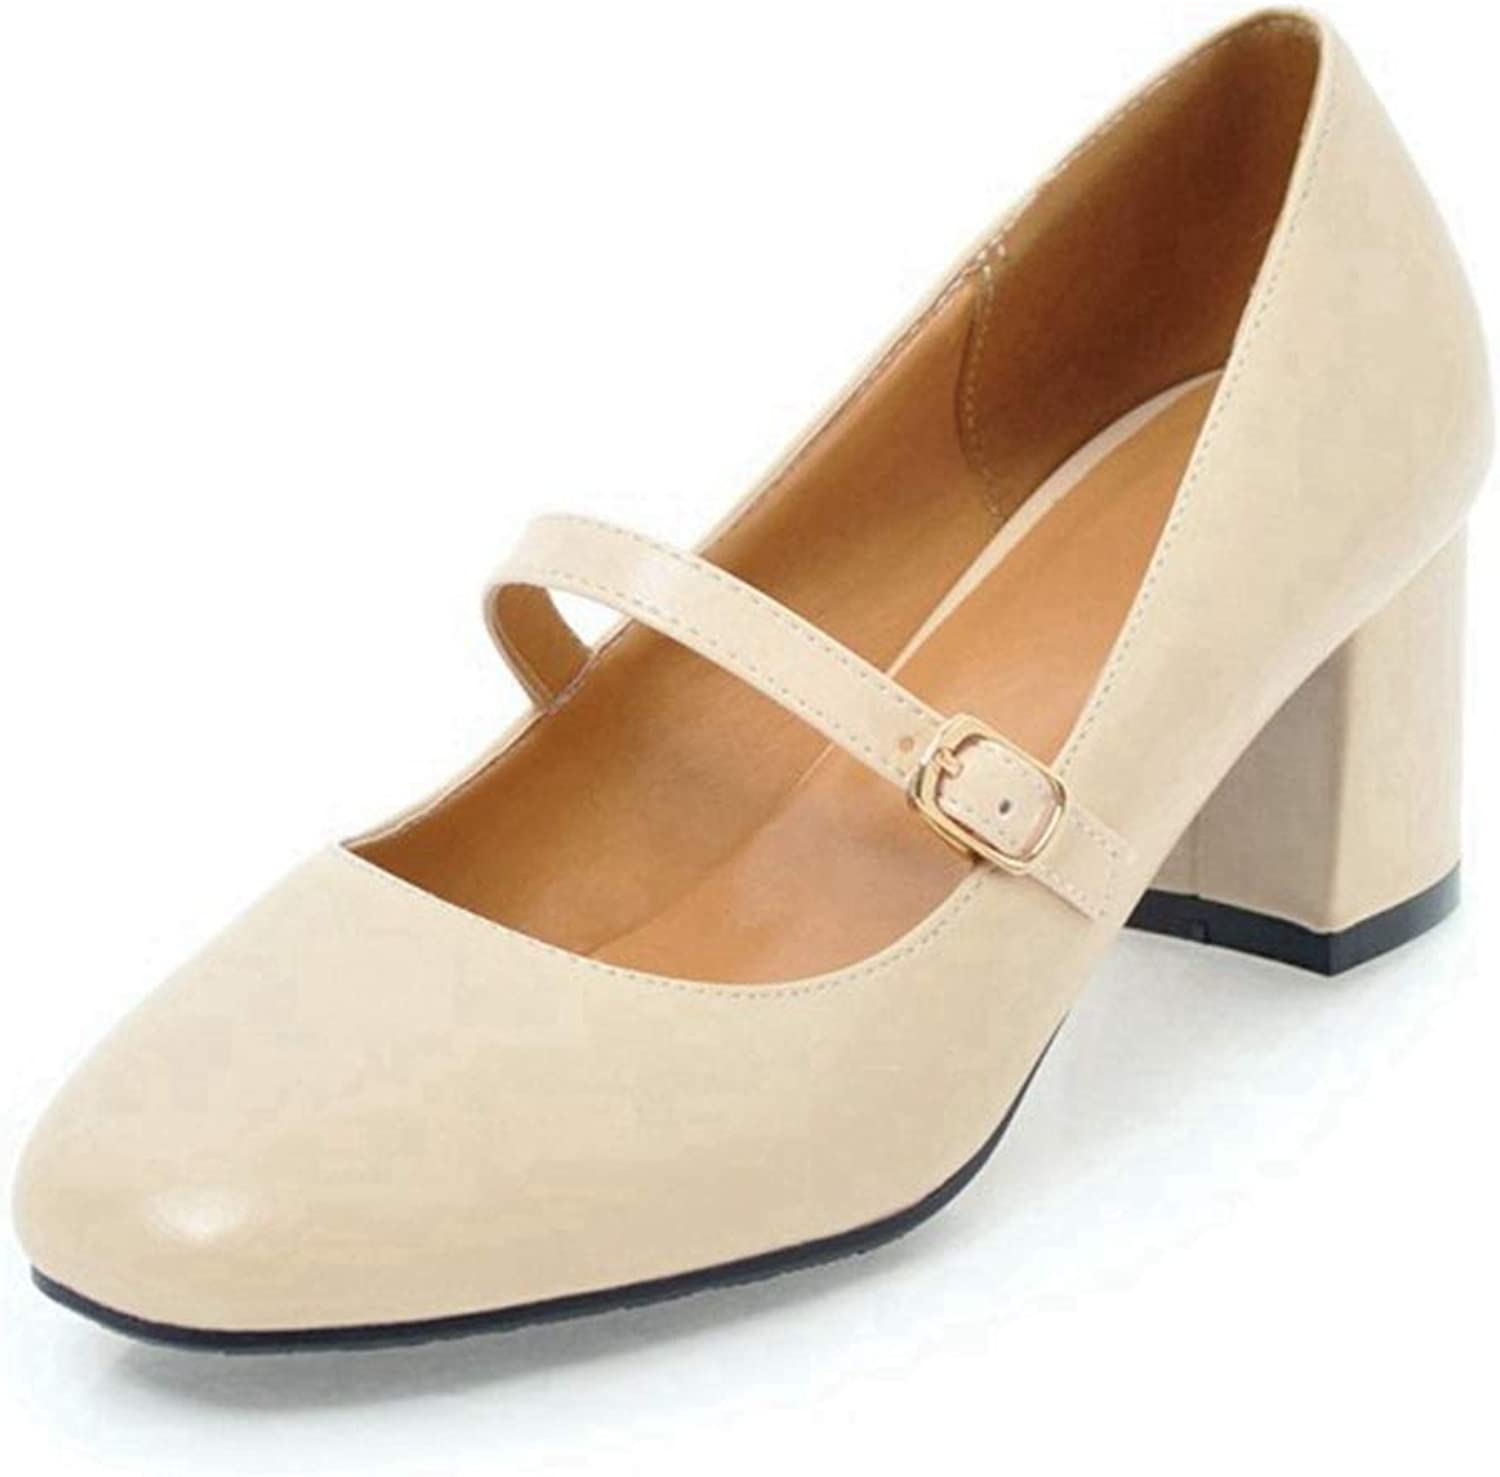 CYBLING Women's Square Toe Buckle Strap Slip On Work shoes Block Mid Heel Mary Jane Pumps